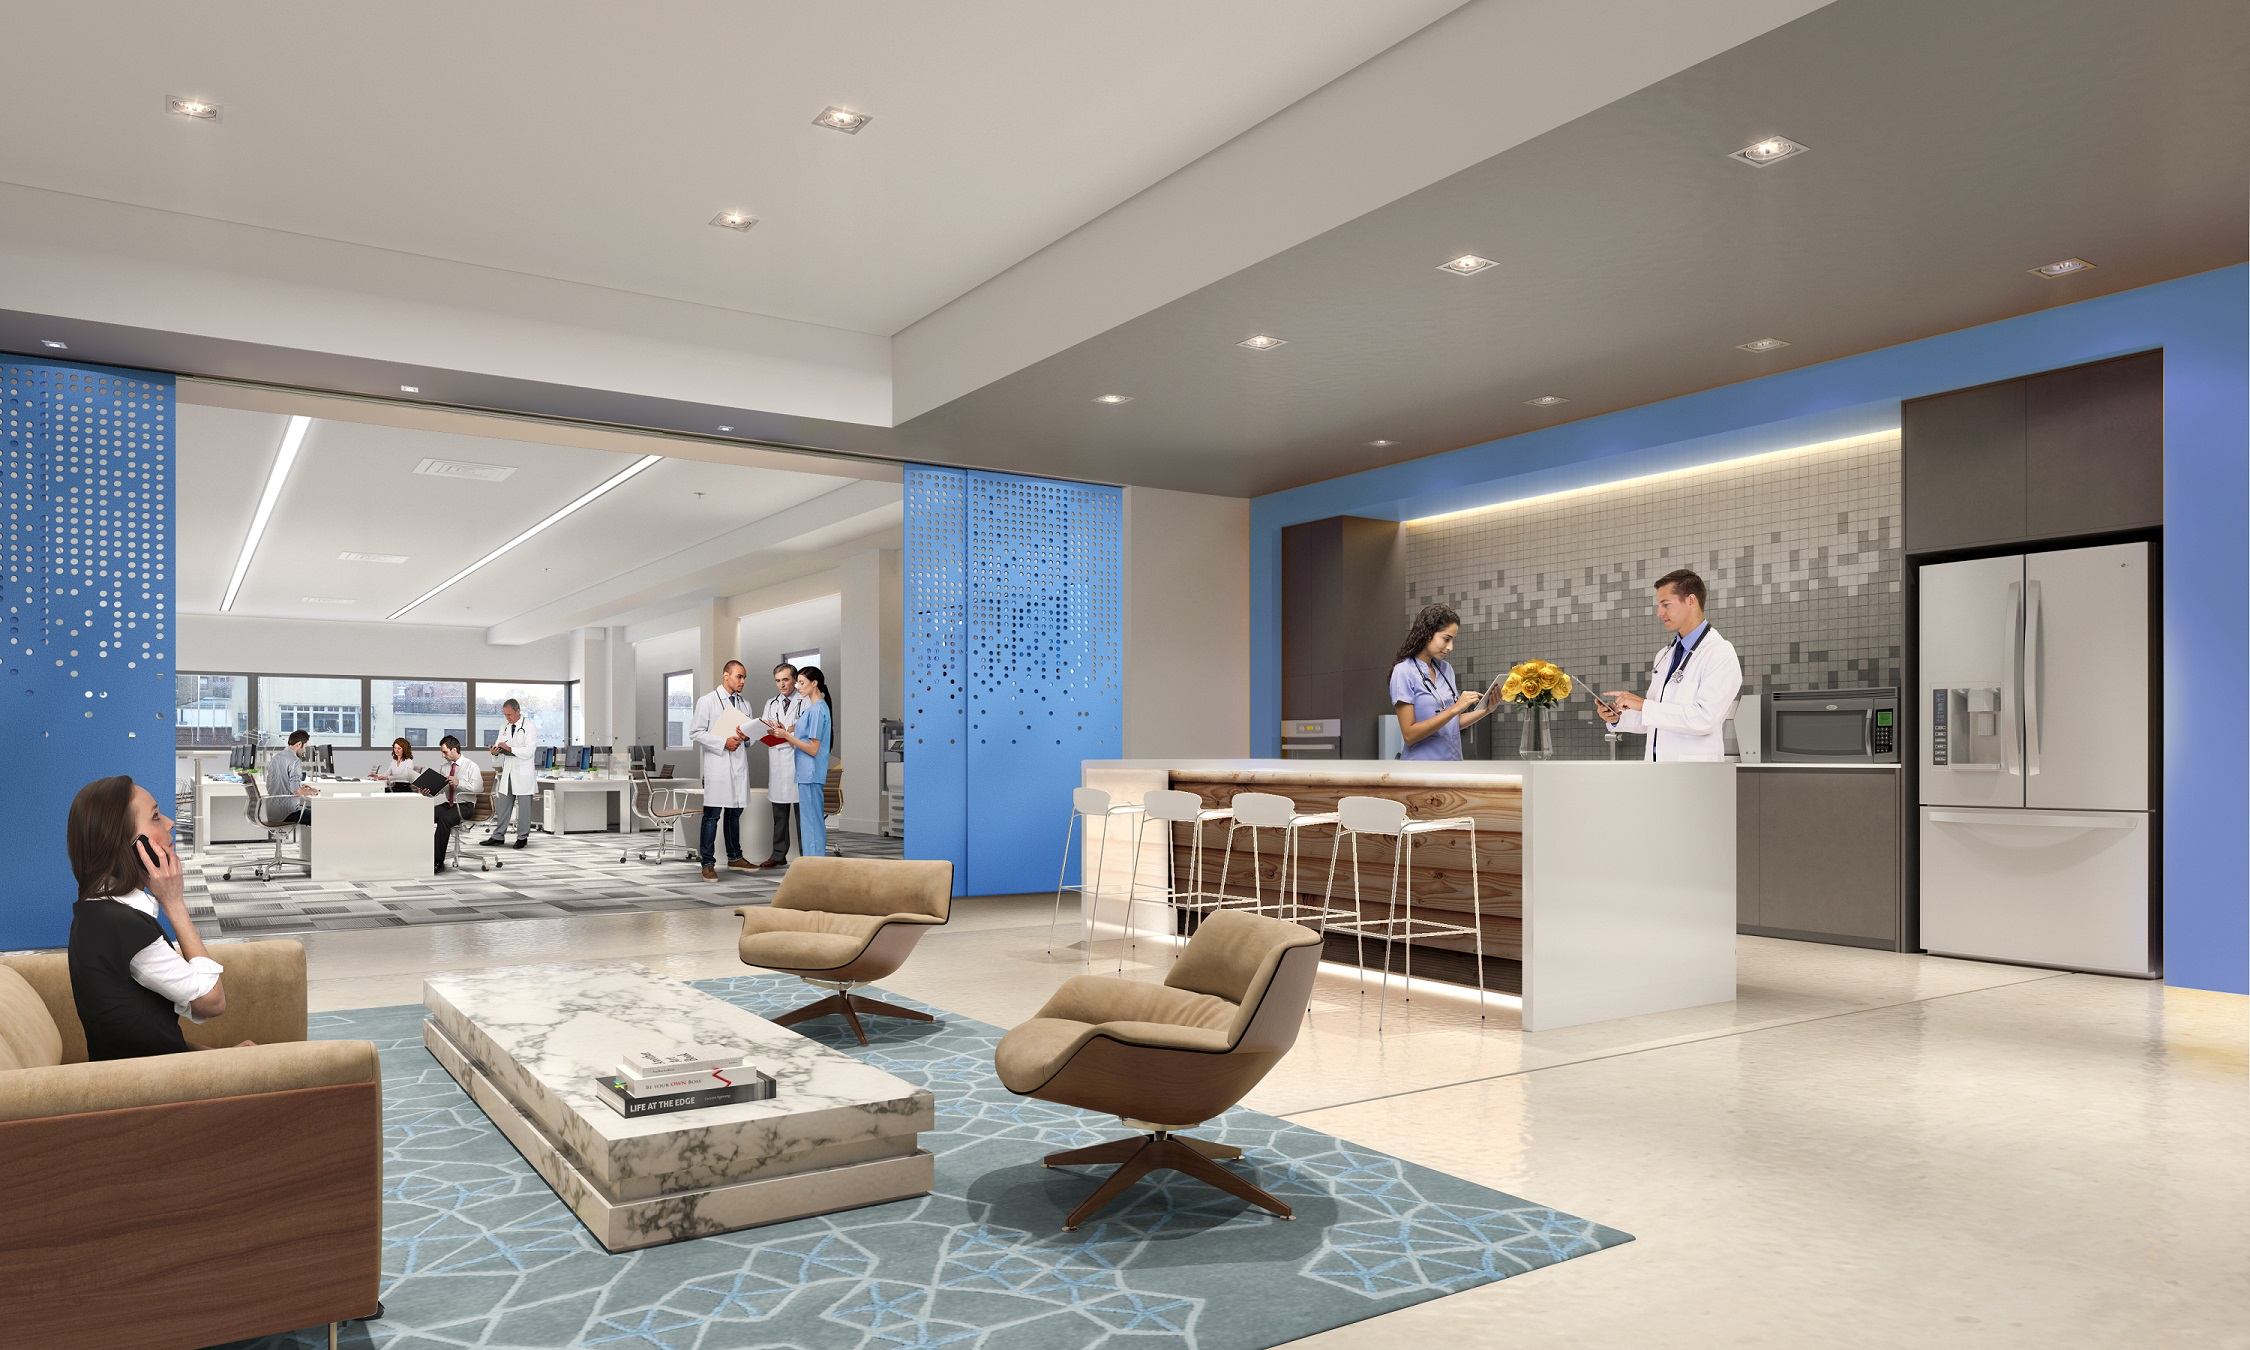 Rendering of Park Sixty Medical, located at 110 East 60th Street with MEP engineering services provided by 2L Engineering